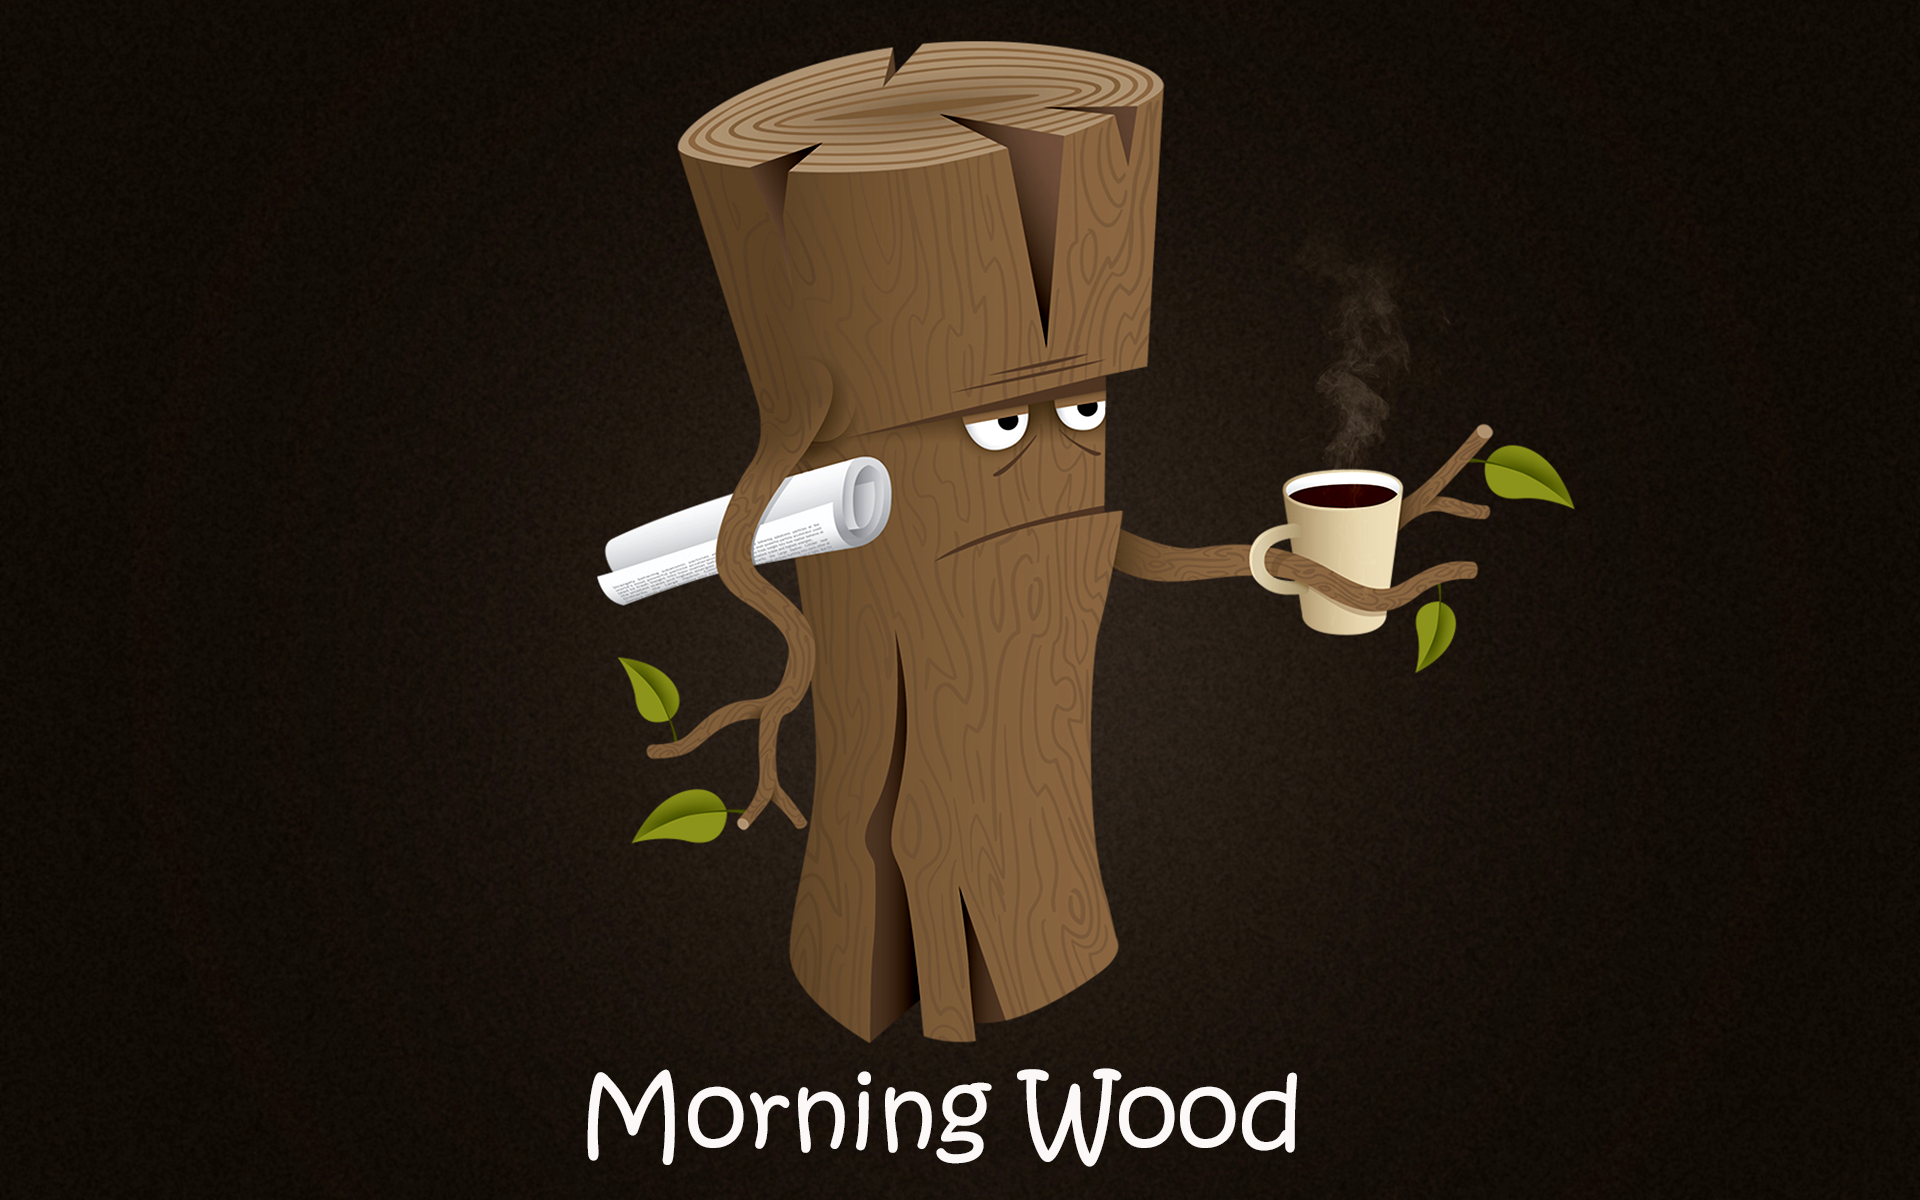 illustration quote wood cartoon coffee morning log lighting hand product - Coffee Morning PNG HD